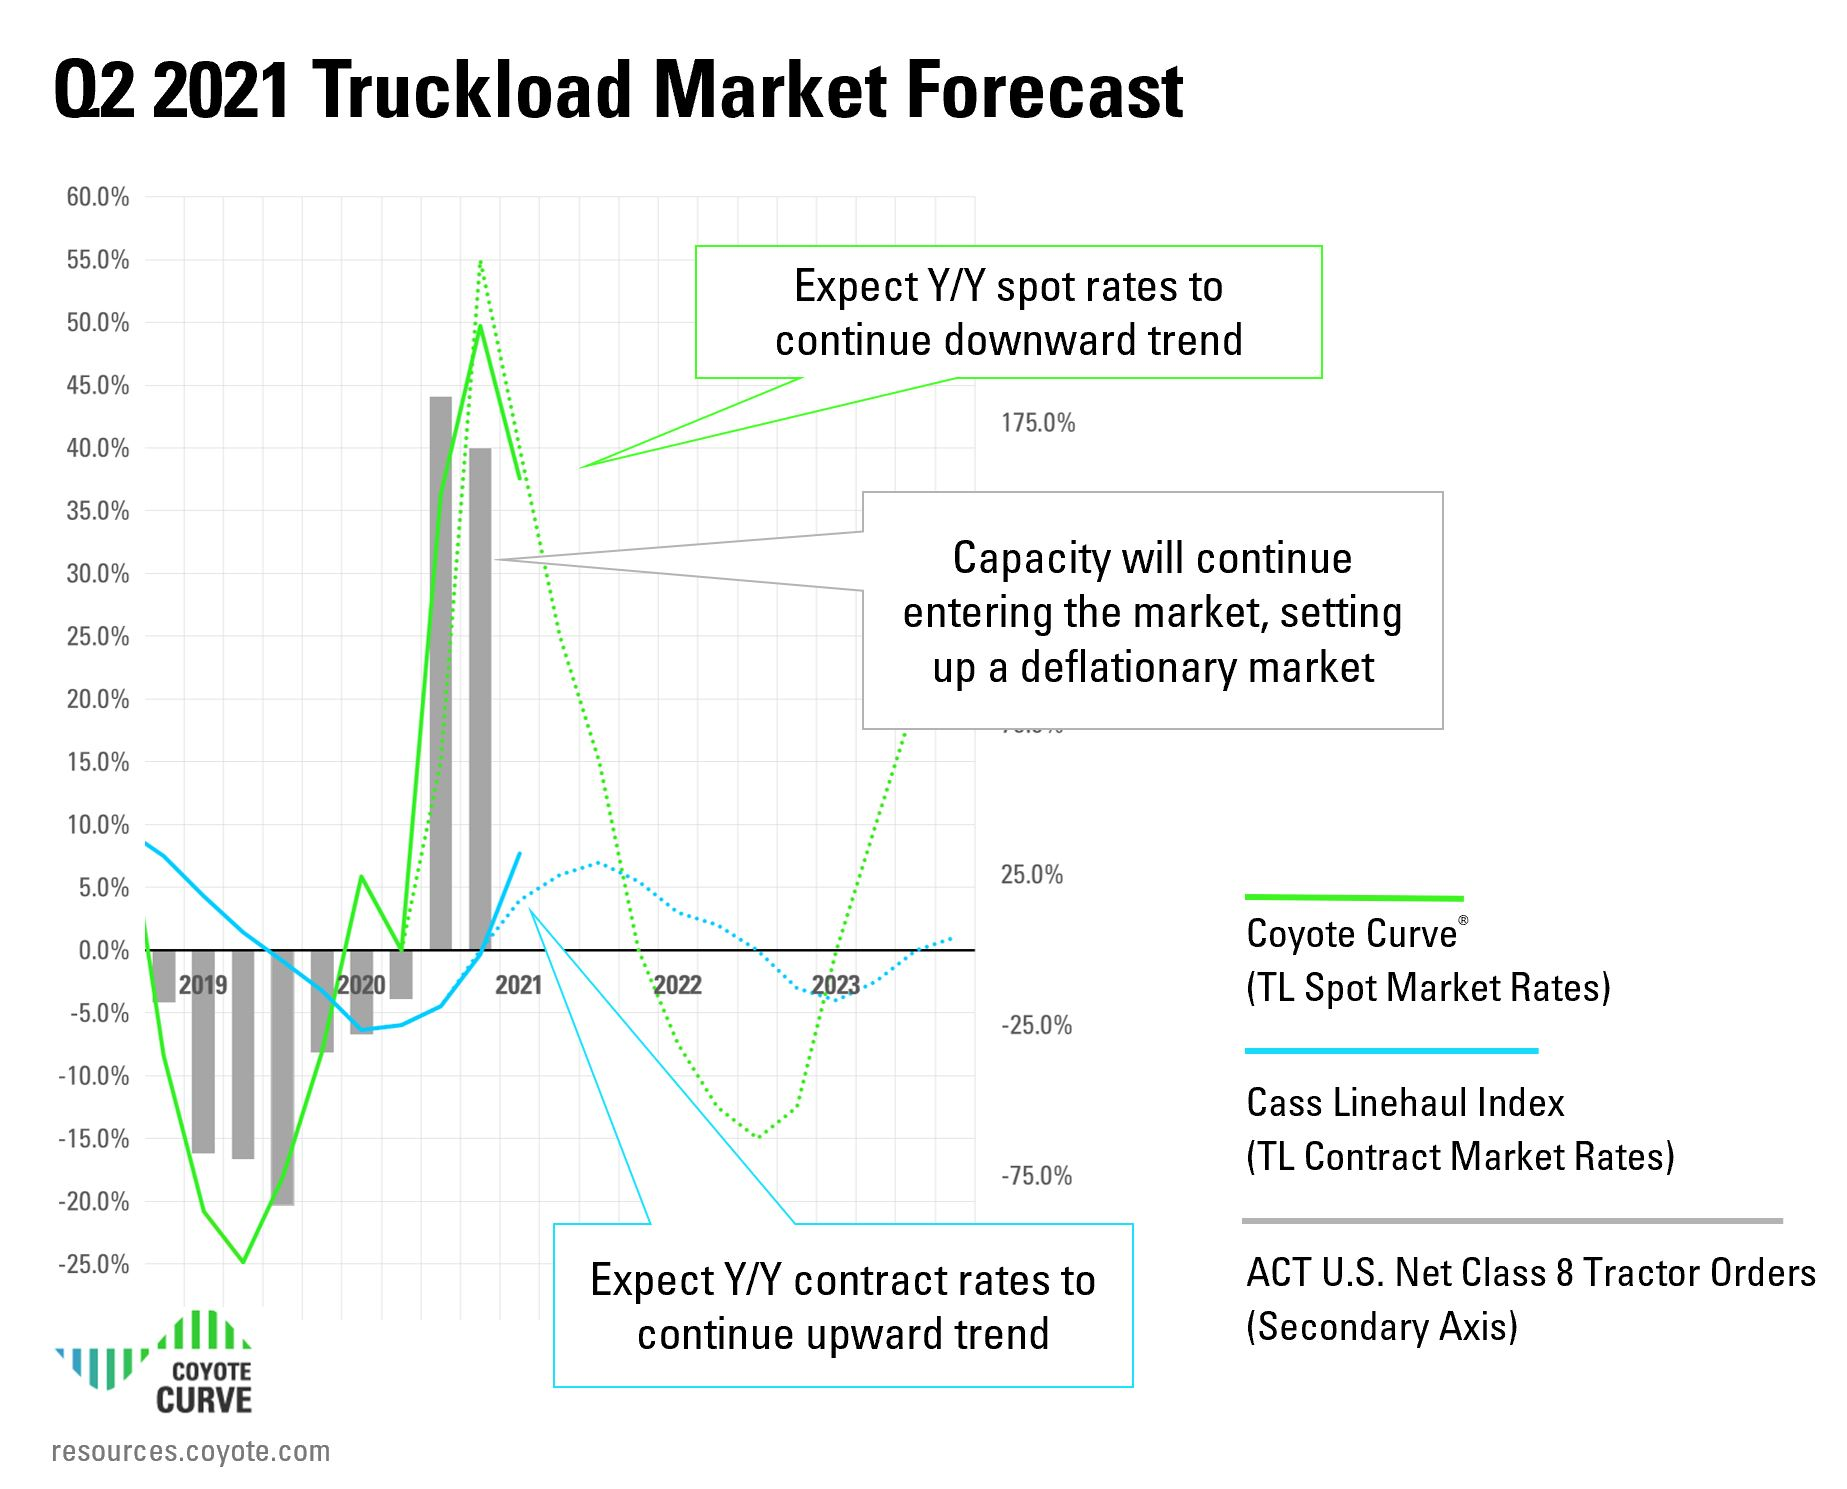 Q2 2021 Truckload market rate forecast - Coyote Curve